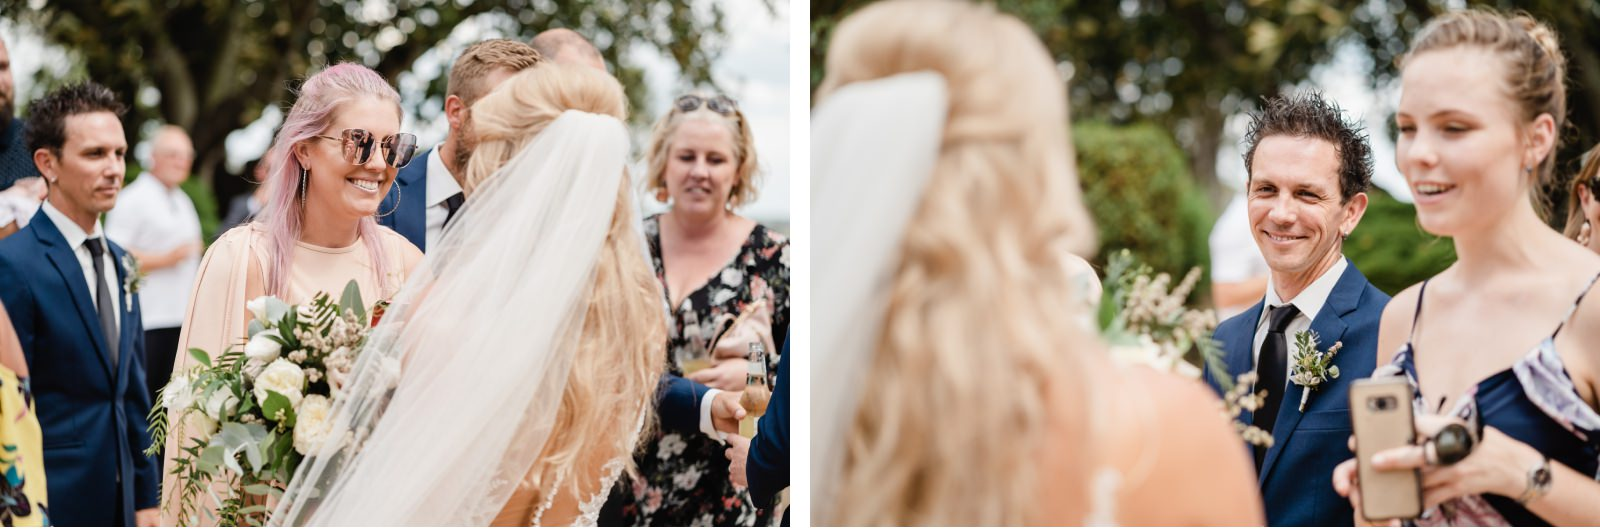 wallalong-house-hunter-valley-wedding-photographer-41